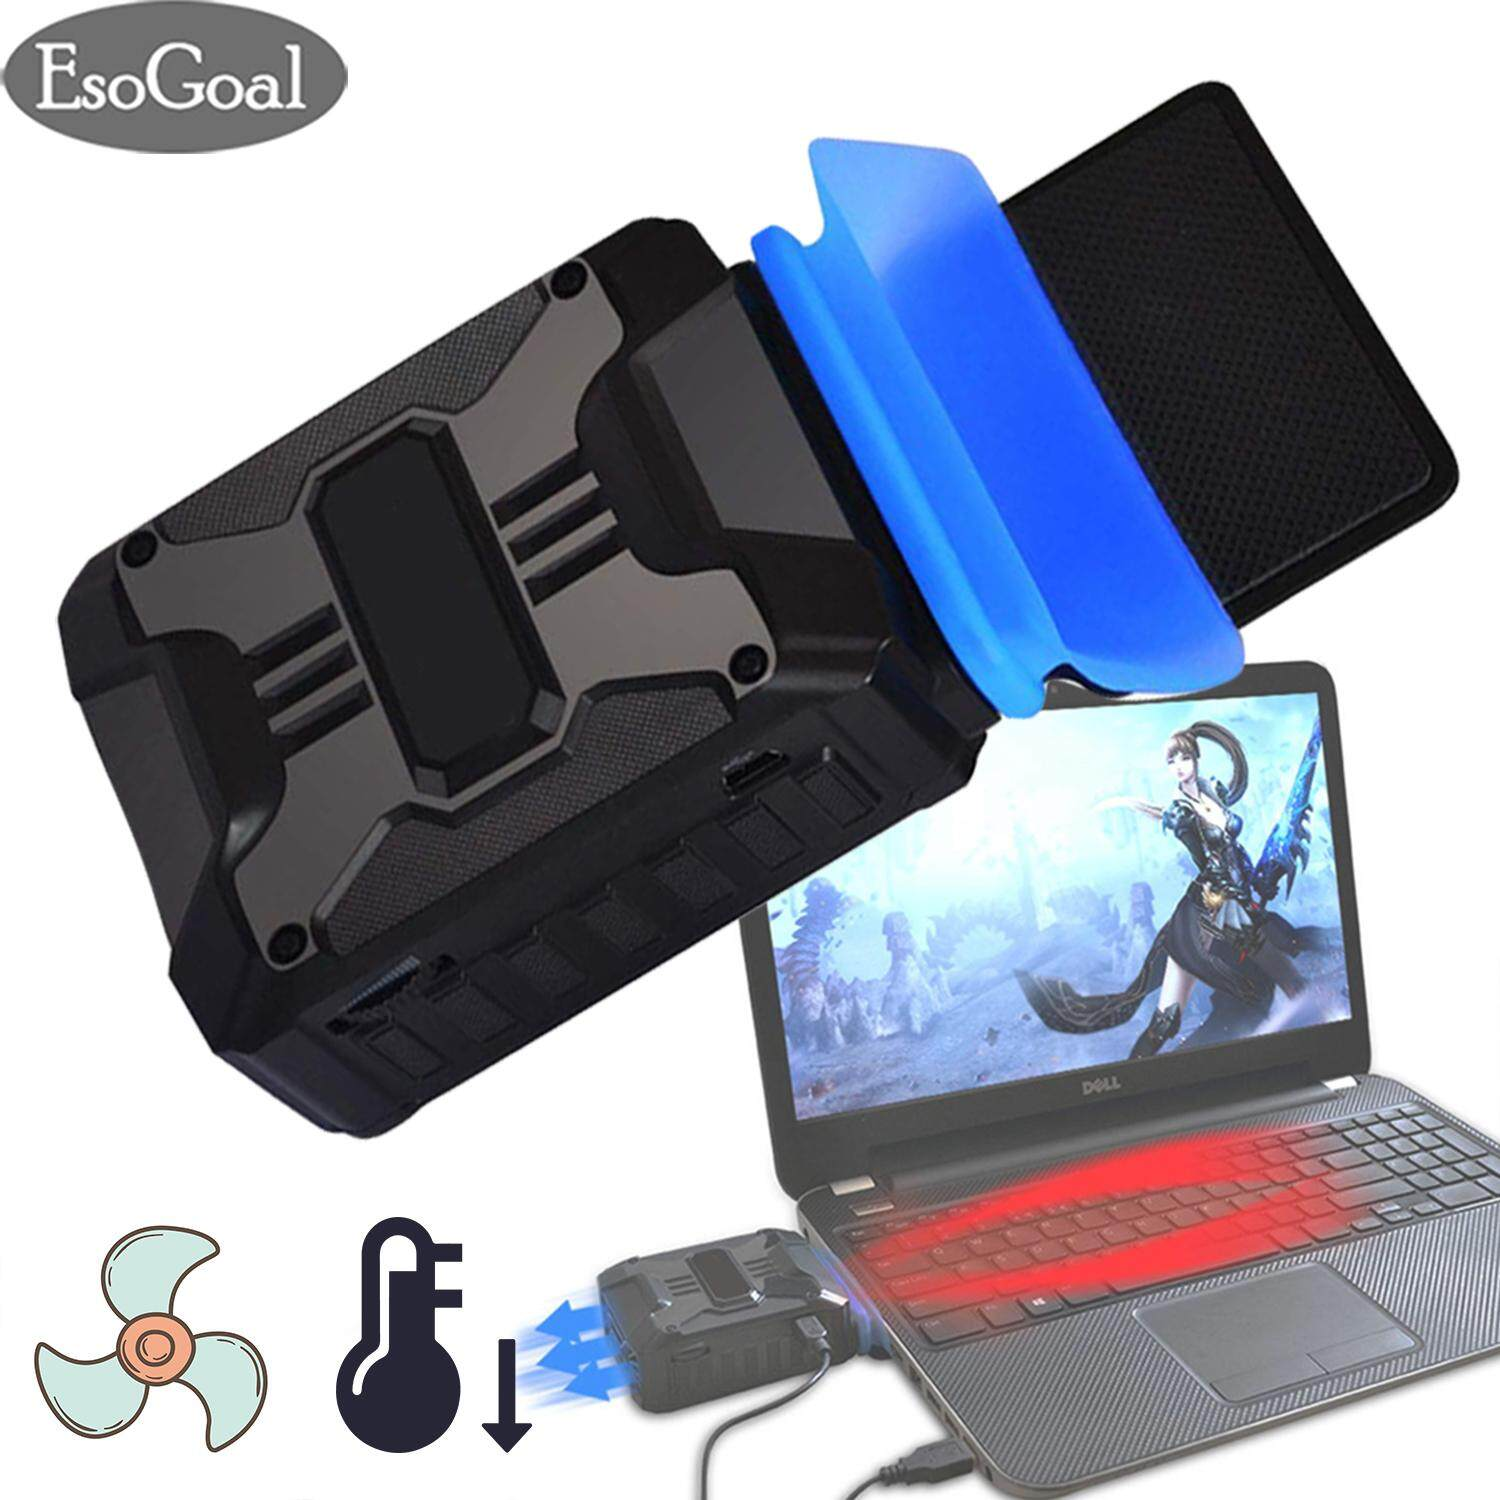 EsoGoal Laptop Cooling Fan Laptop Cooler USB Portable Cooling Fan for Laptop Cooler Stand Laptop Vacuum Cooler Laptop Air Cooler for Notebook Laptop